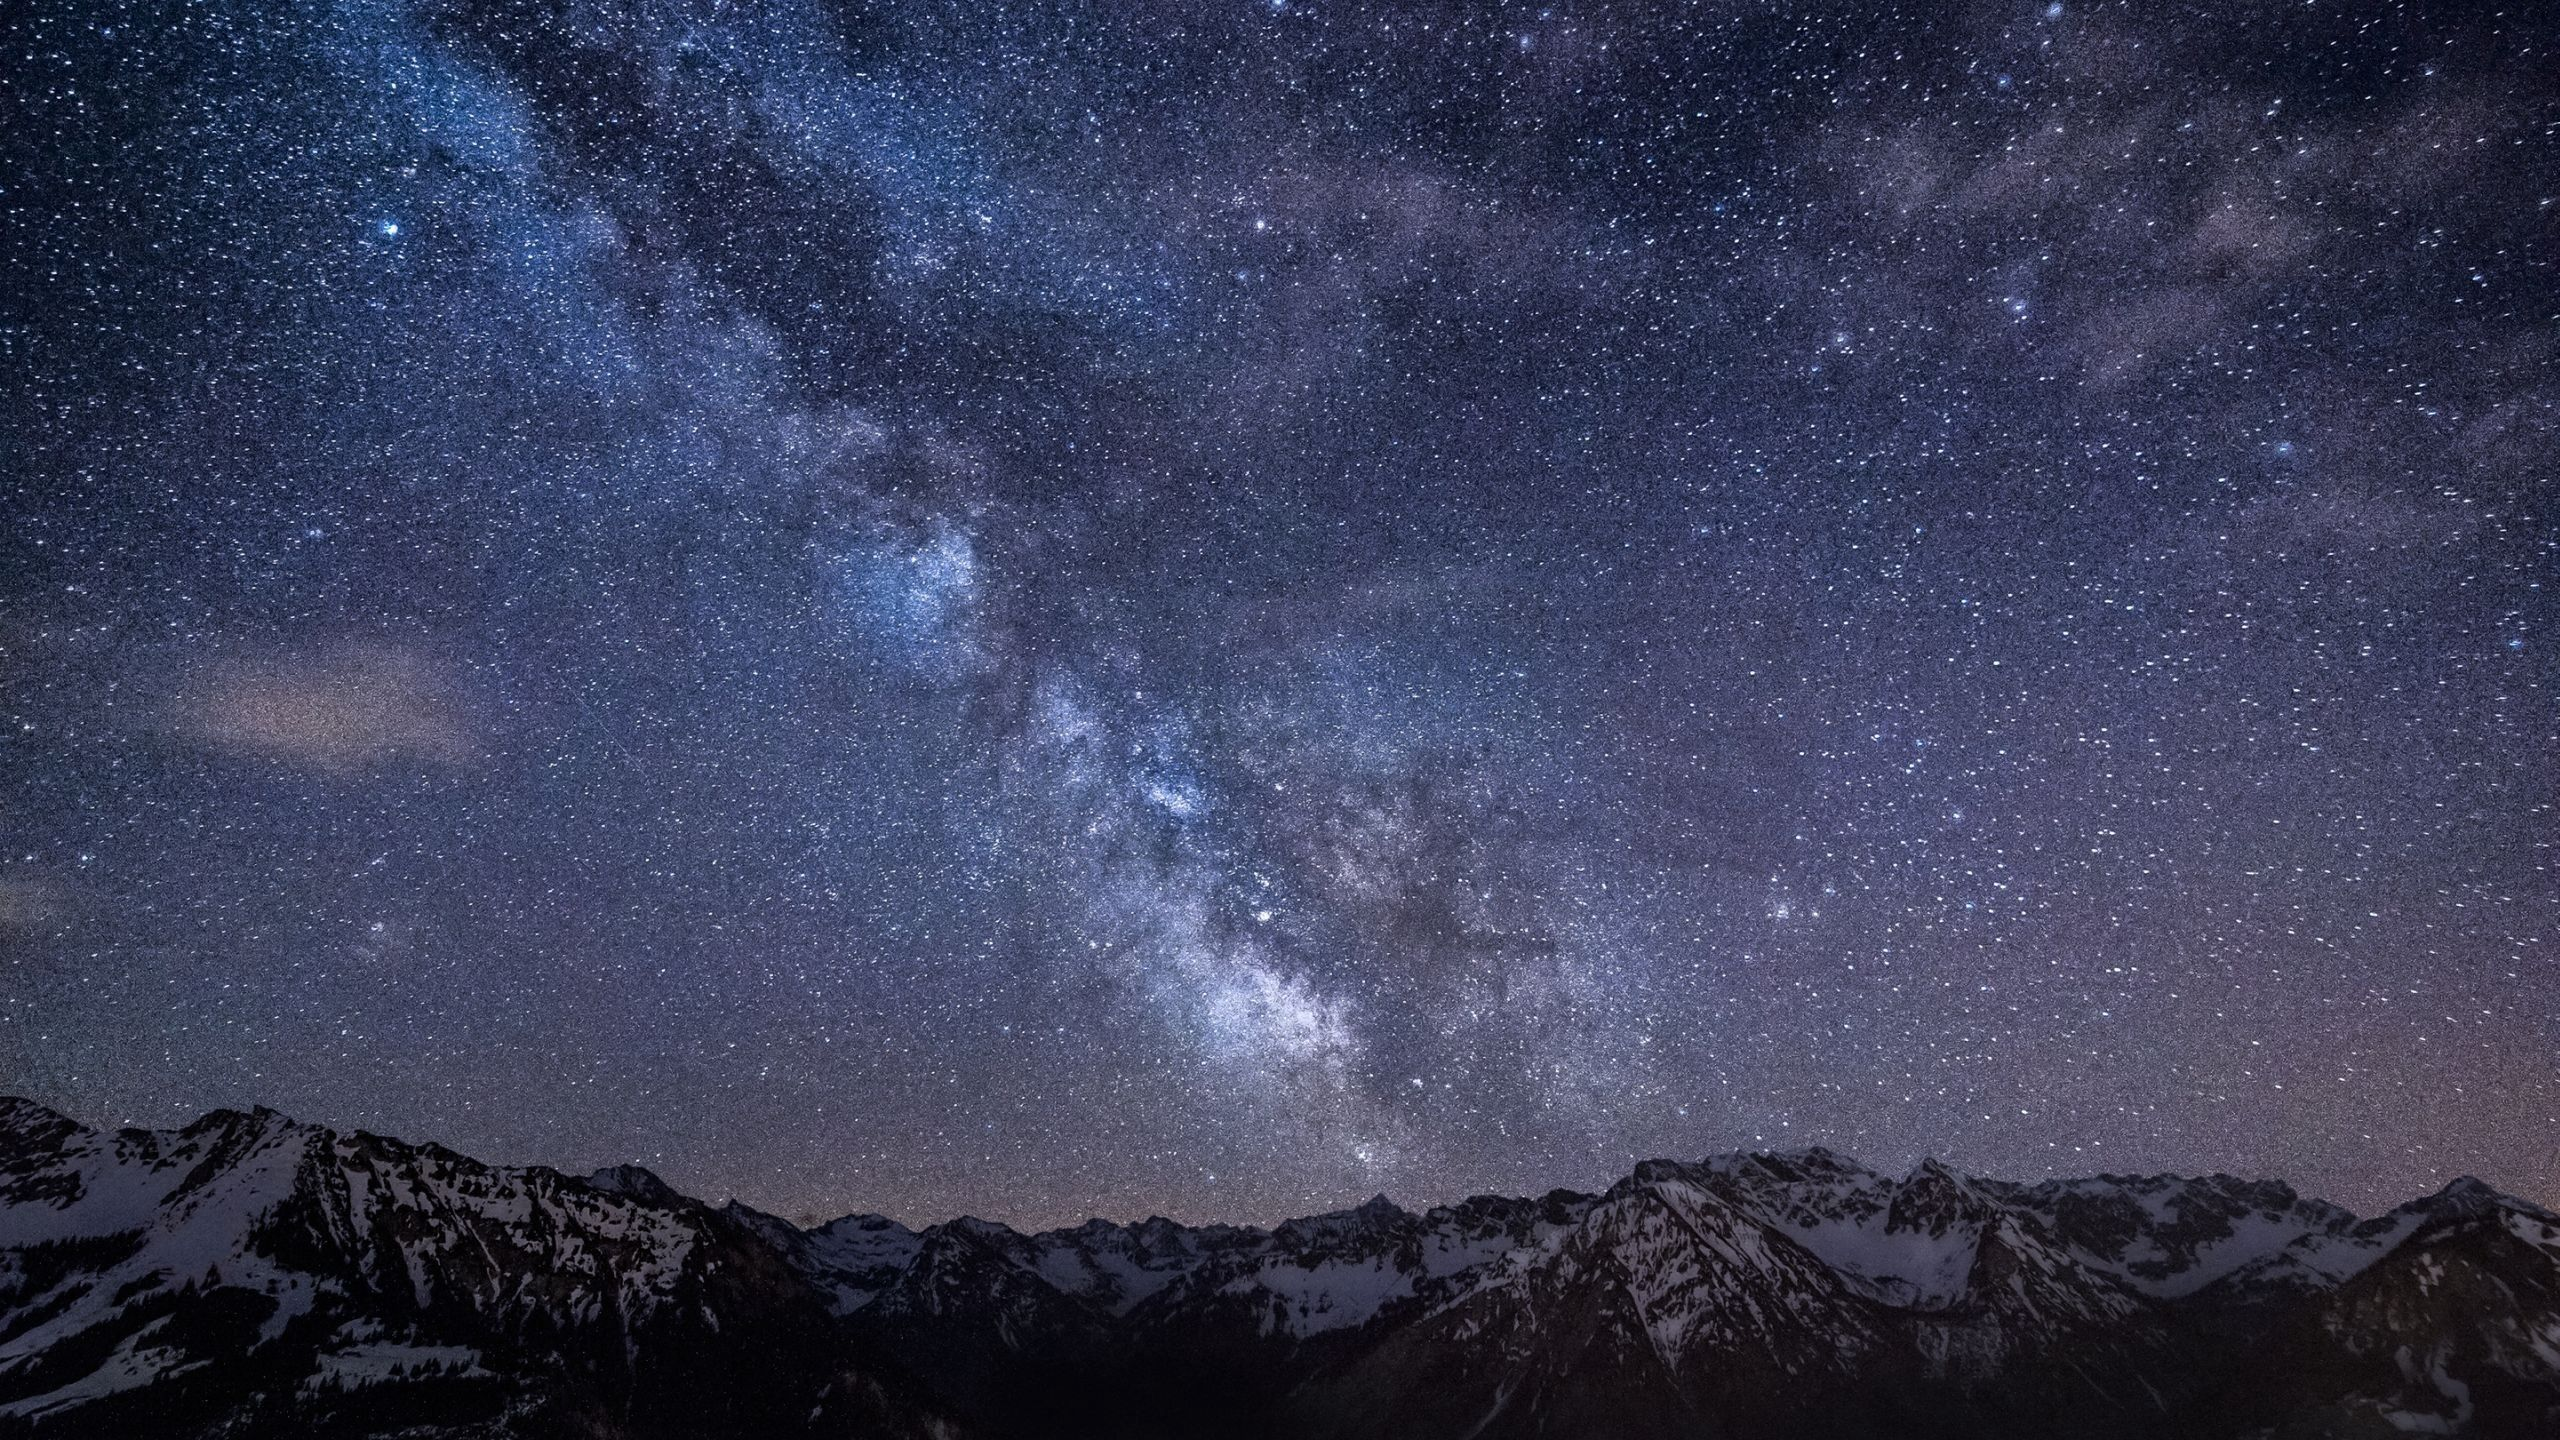 Mountain Night Sky Wallpapers   Top Mountain Night Sky